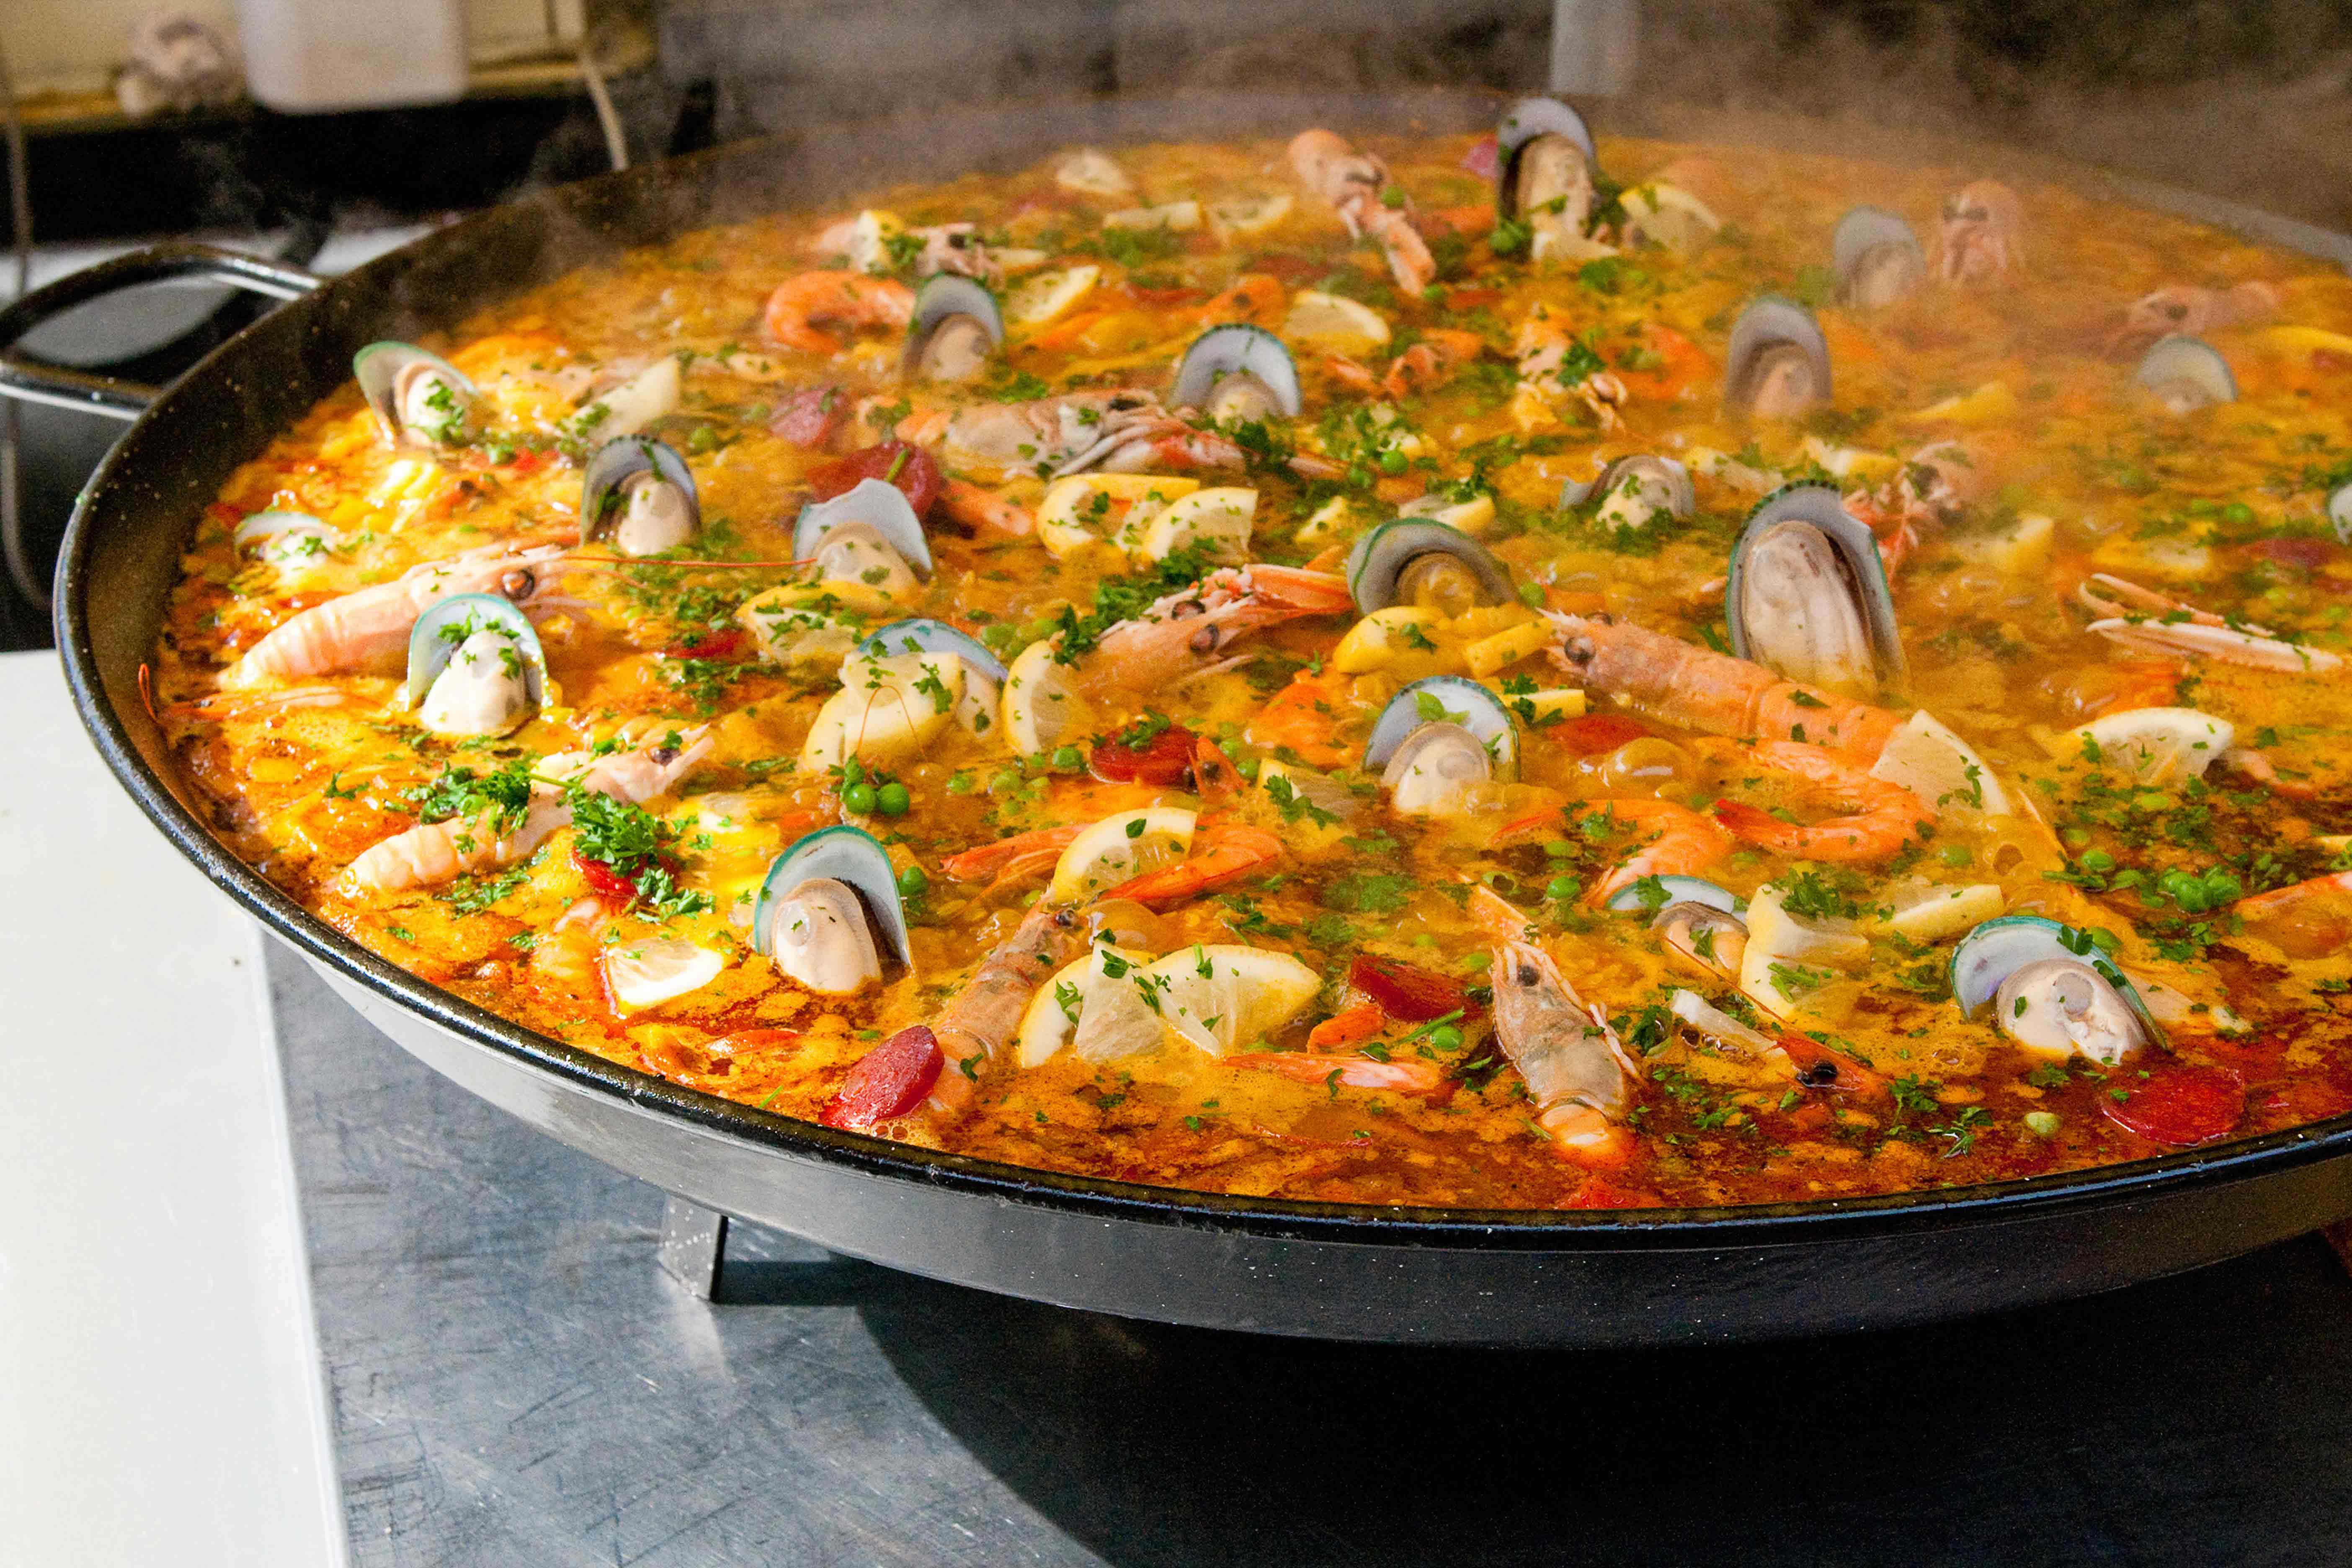 Costa Blanca catering we prepare delicious Paella for your party!